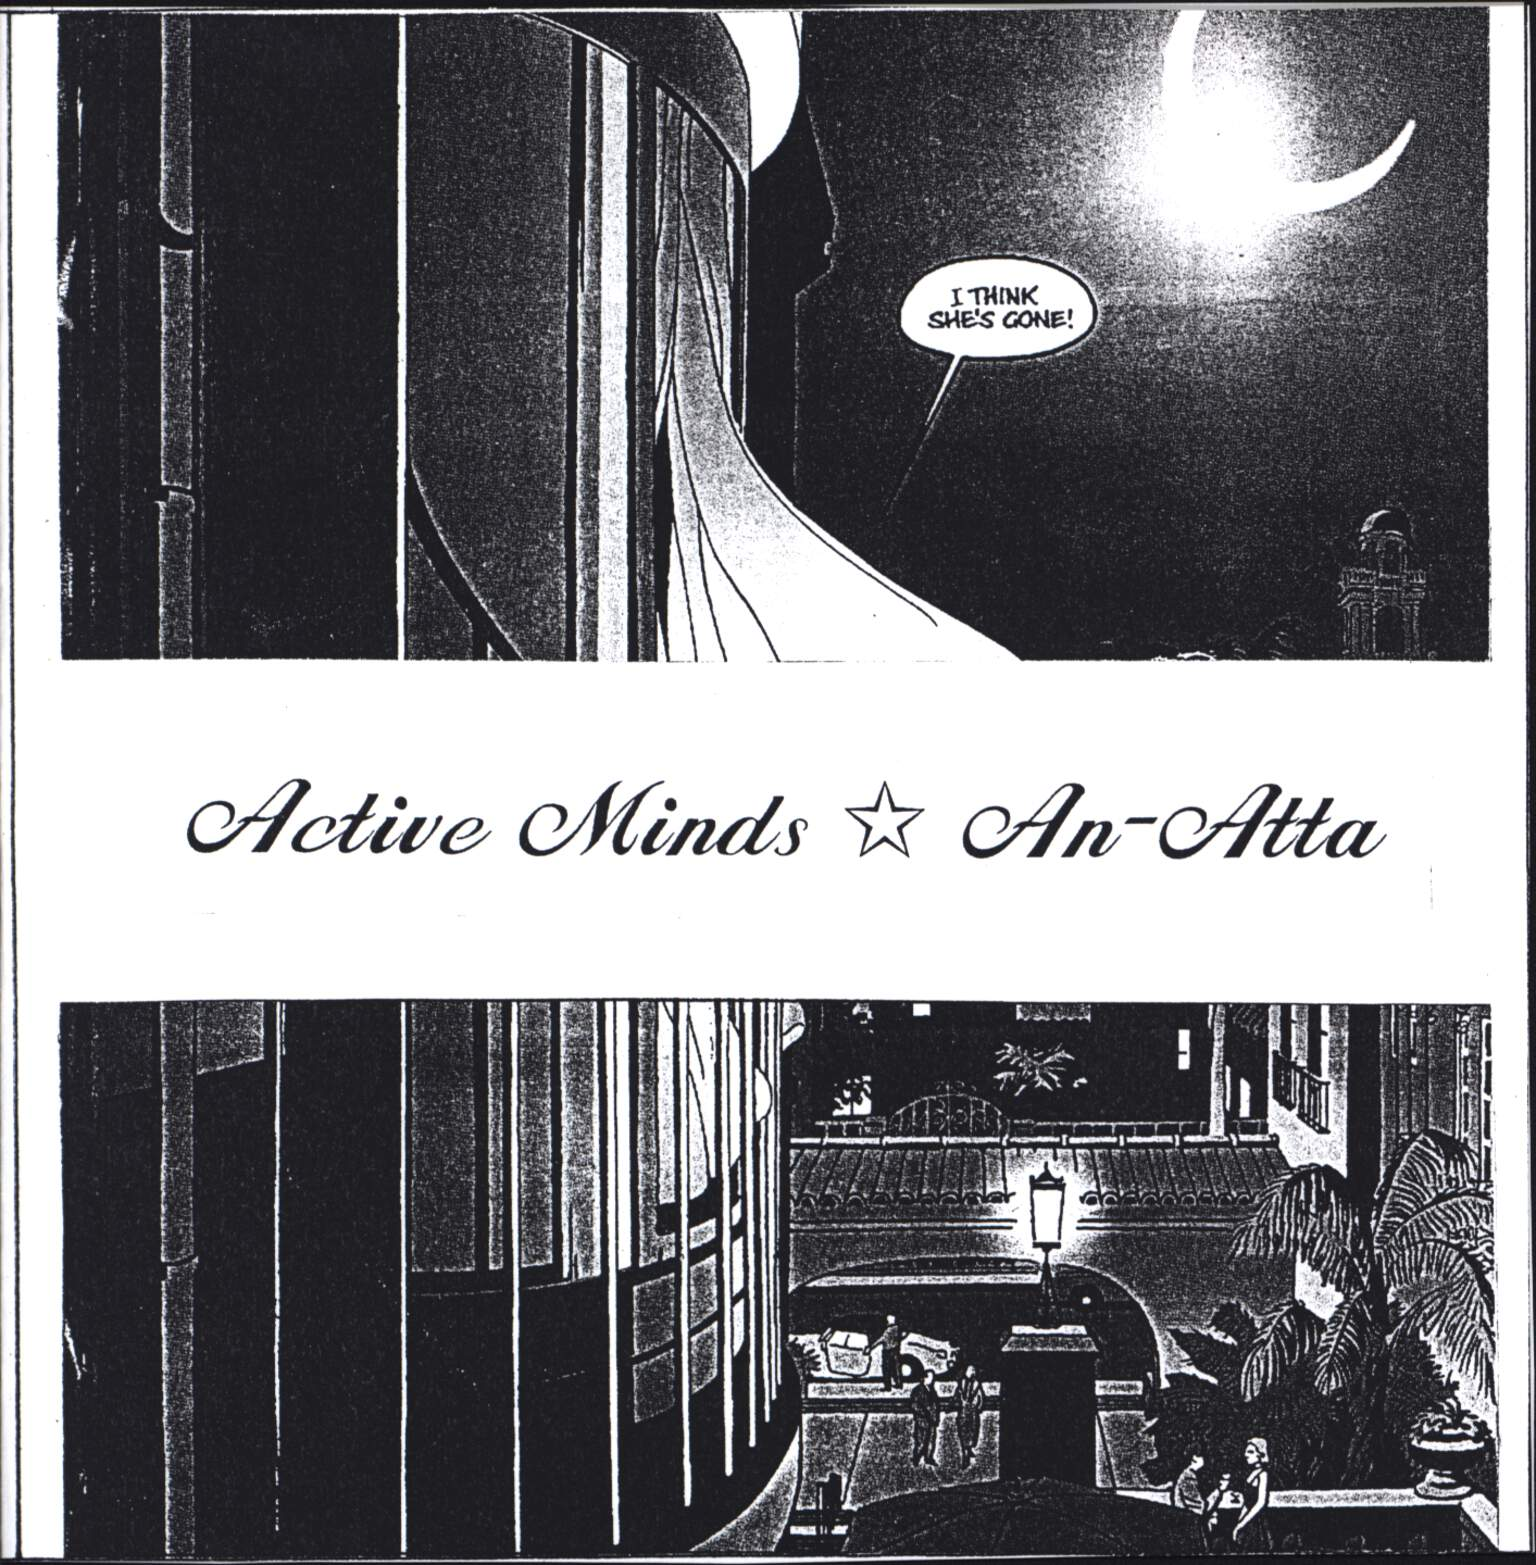 "An-Attâ: An-Attâ / Active Minds Split, 7"" Single (Vinyl)"